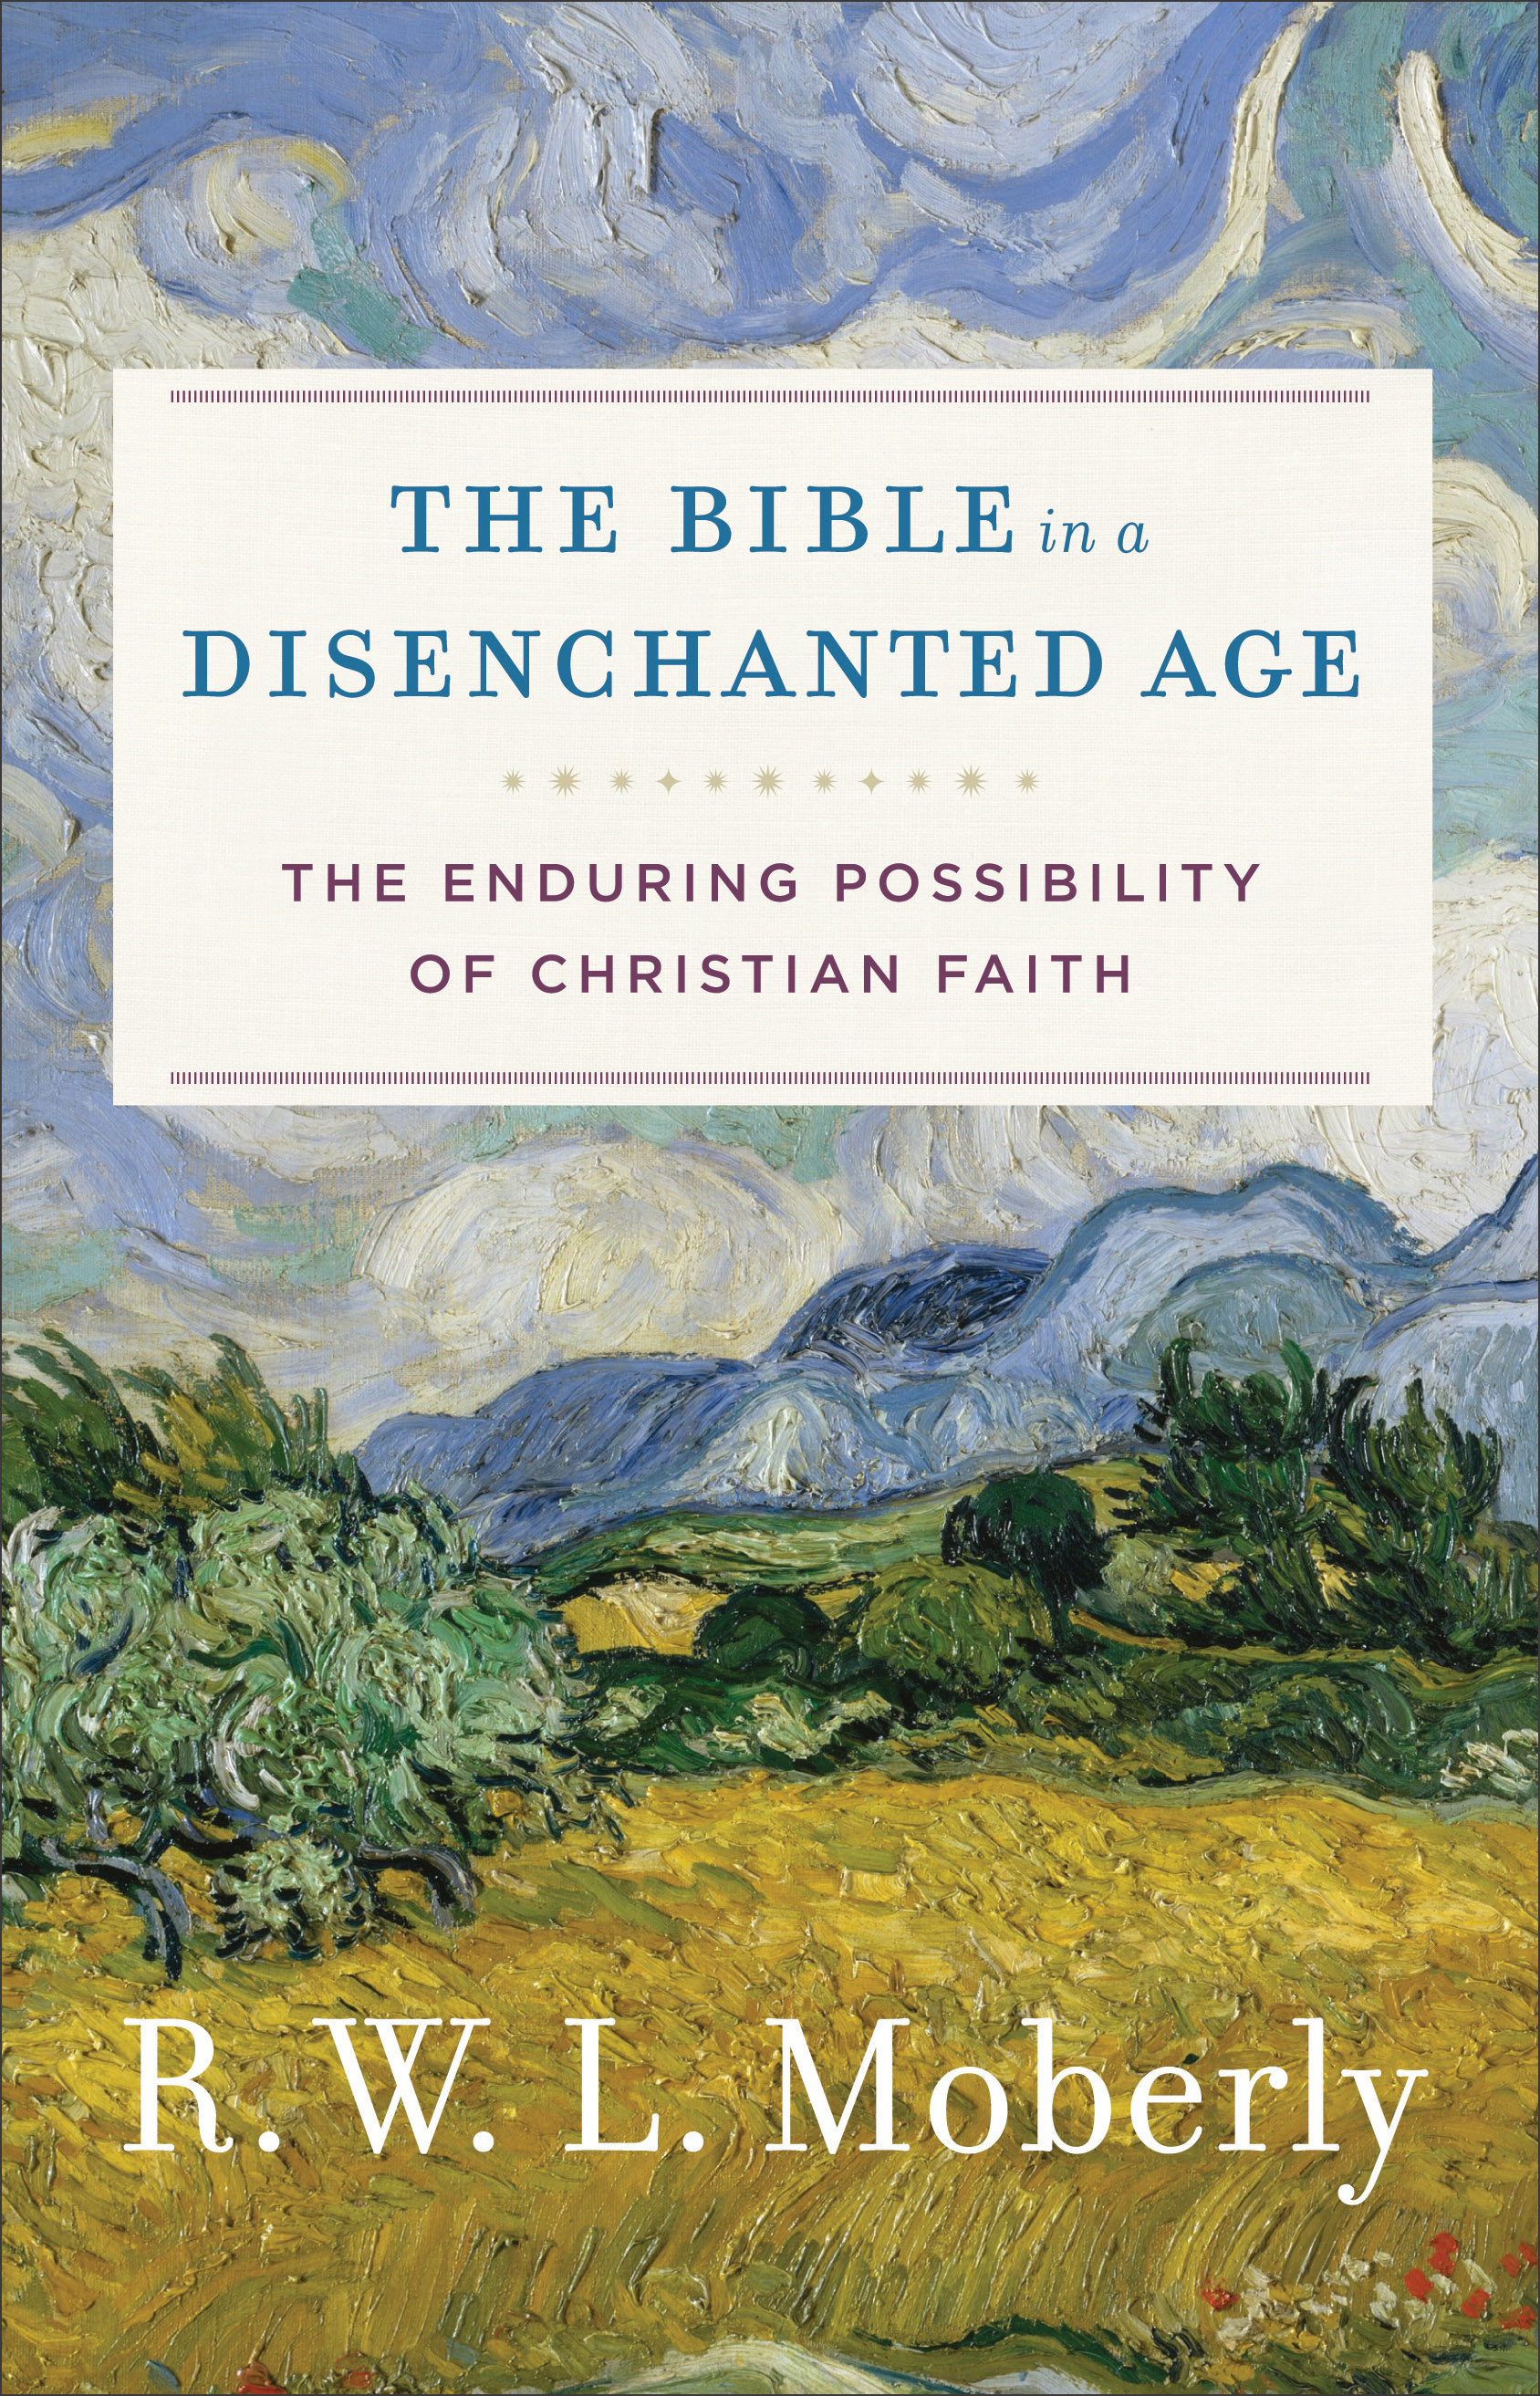 The Bible in a Disenchanted Age | Baker Publishing Group